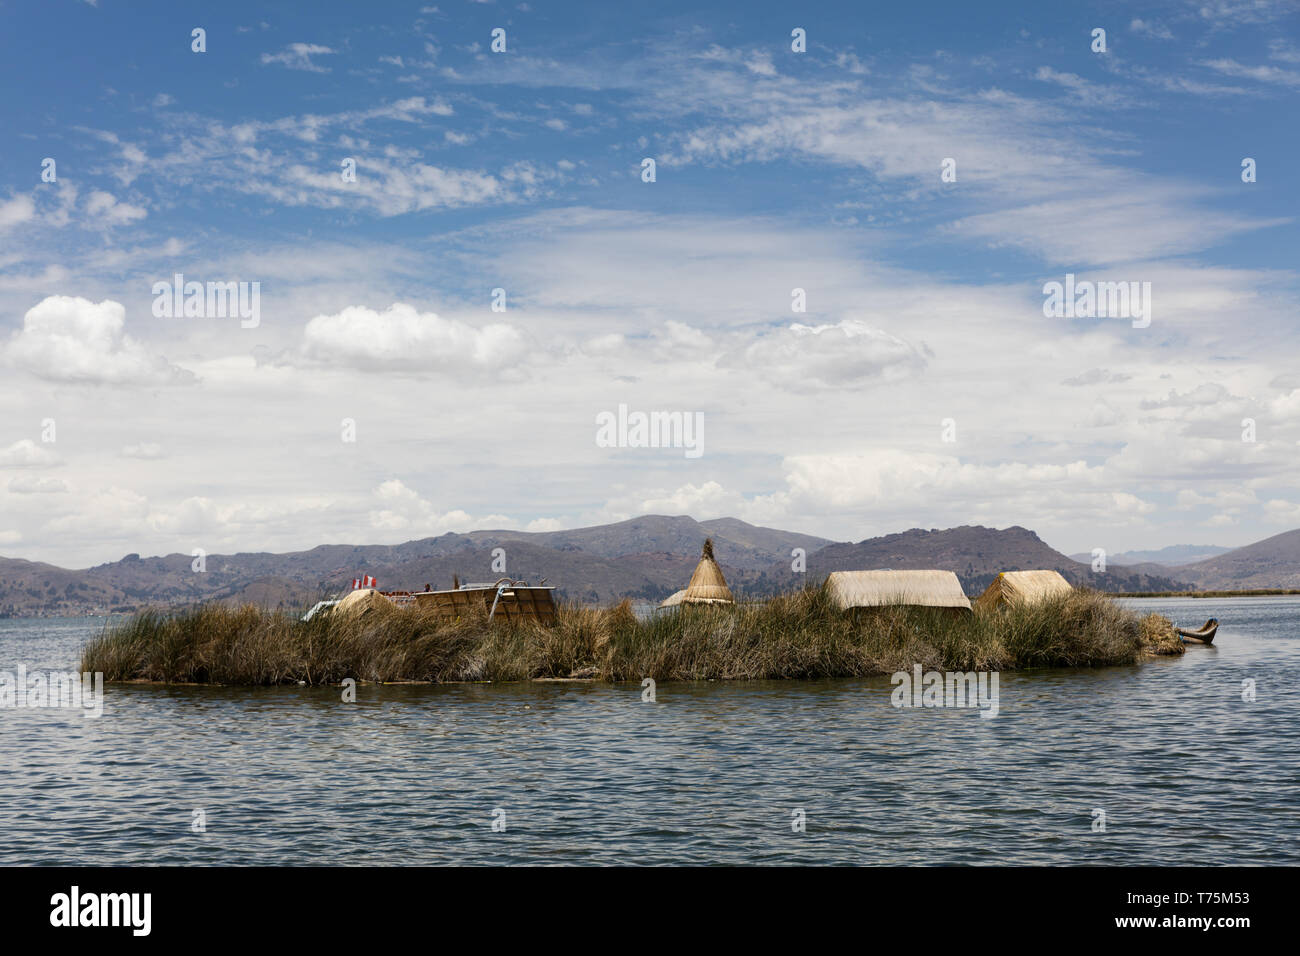 Landscape of islands Uros  ion Titicaca lake, Peru - Stock Image